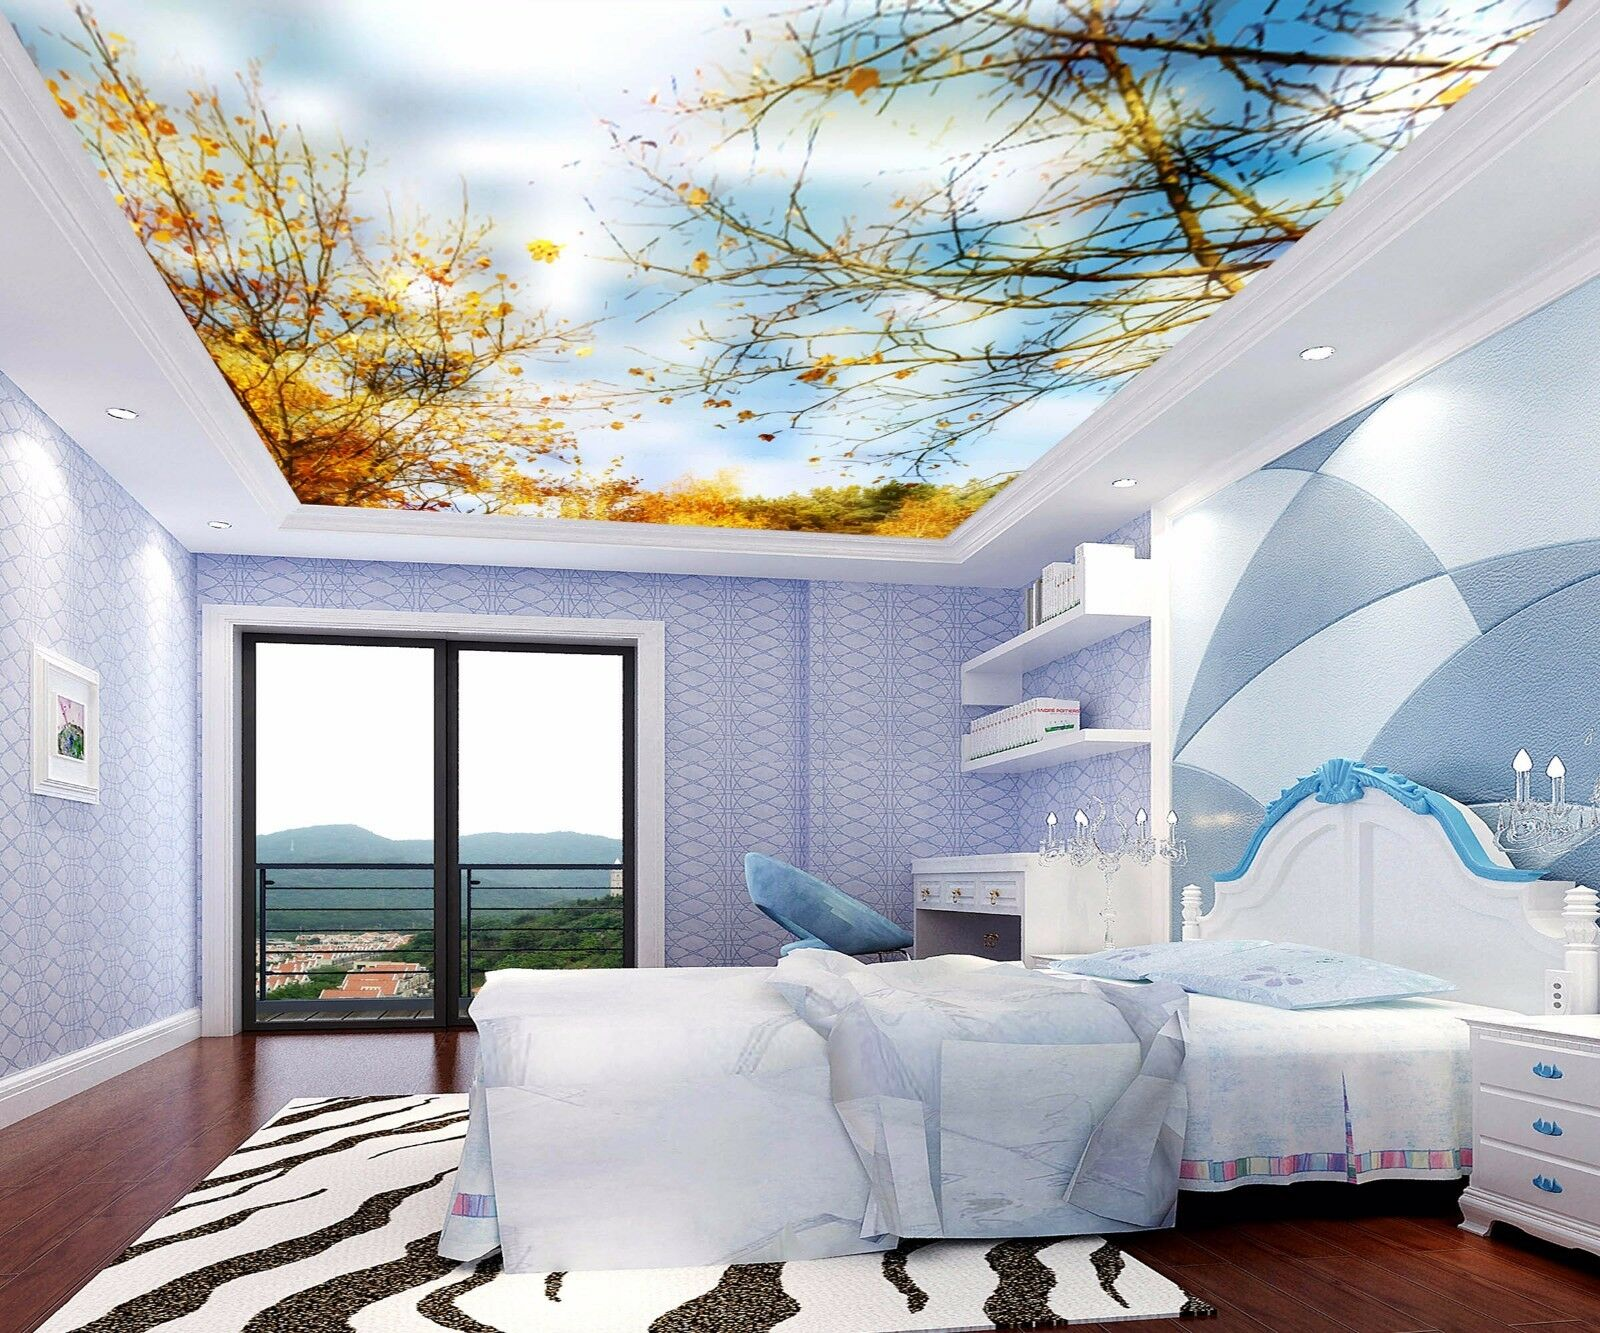 3D Autumn Trees 6 Ceiling WallPaper Murals Wall Print Decal Deco AJ WALLPAPER UK